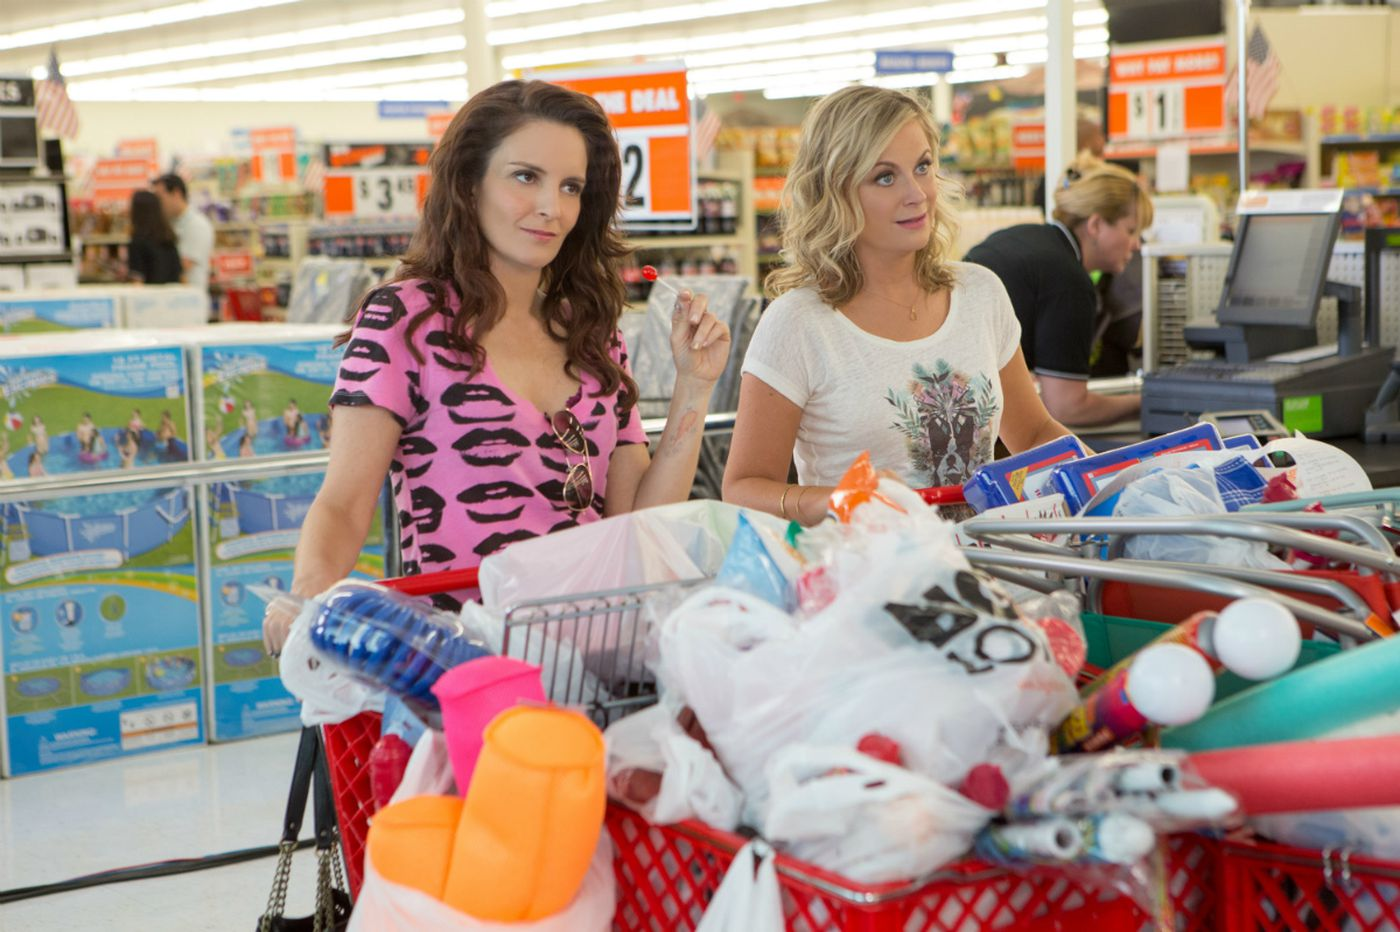 Review: Tina Fey and Amy Poehler reteam for 'Sisters'